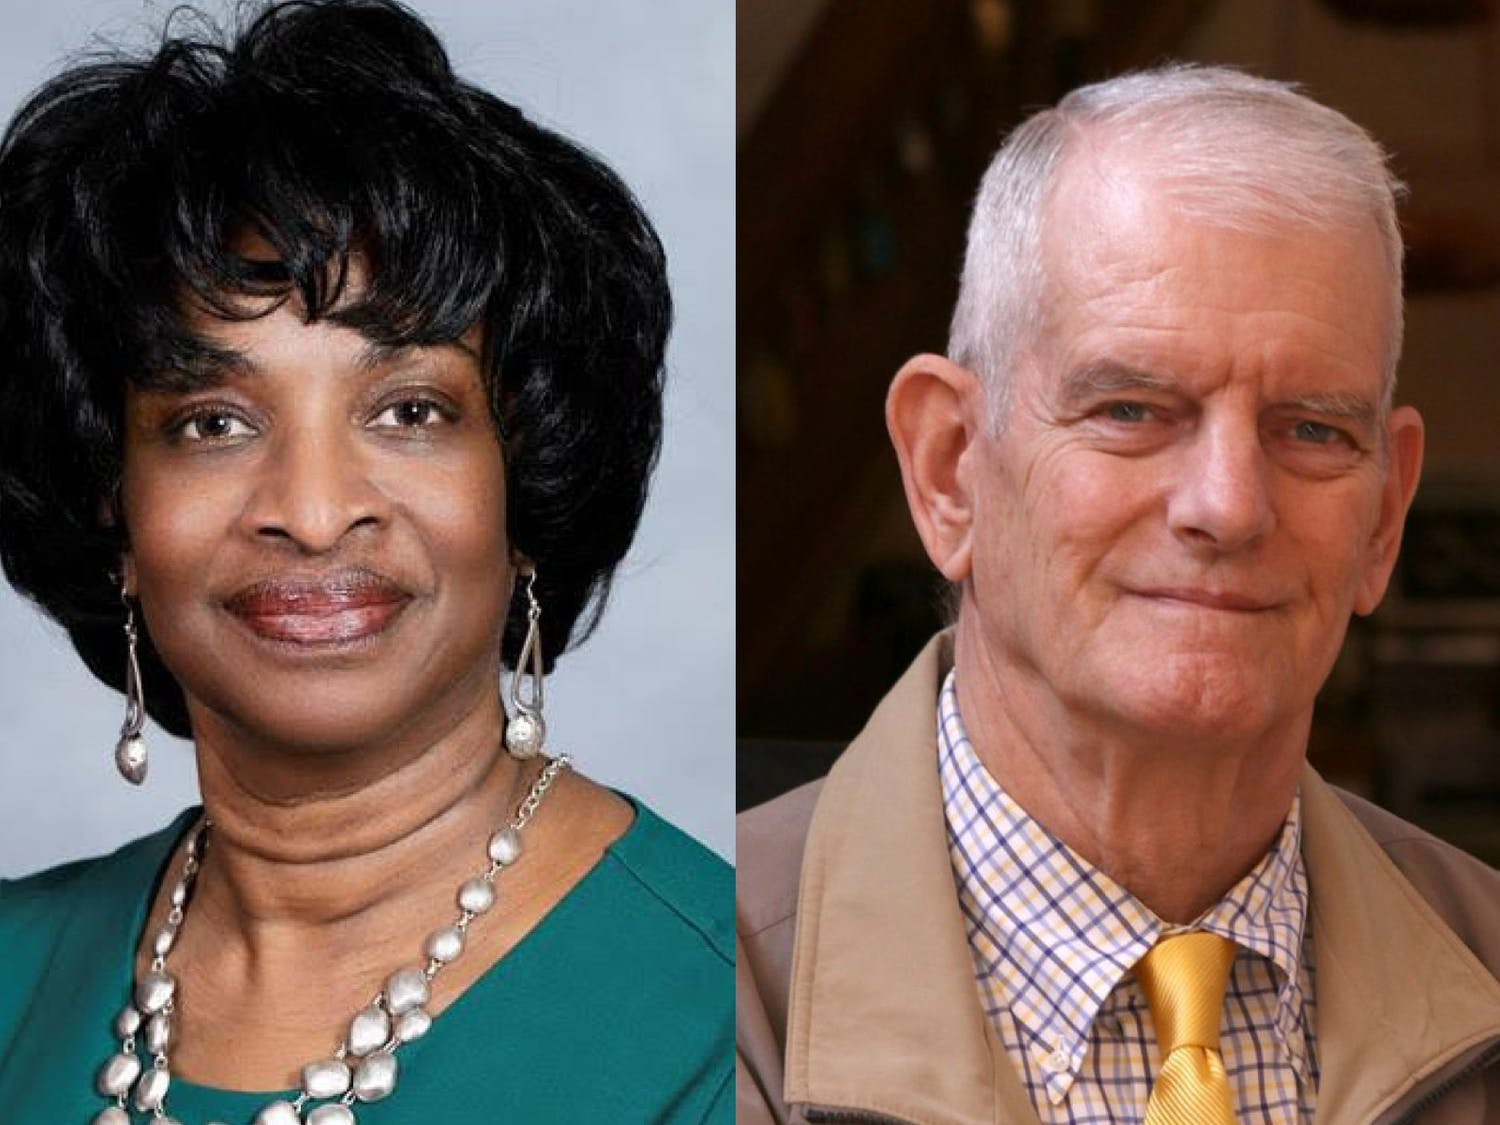 Incumbent N.C. senator Valerie Foushee (left), Democrat, and N.C. businessman Tom Glendinning, Republican, are the candidates for N.C. State Senate District 23. Photos courtesy of Foushee and Glendinning.